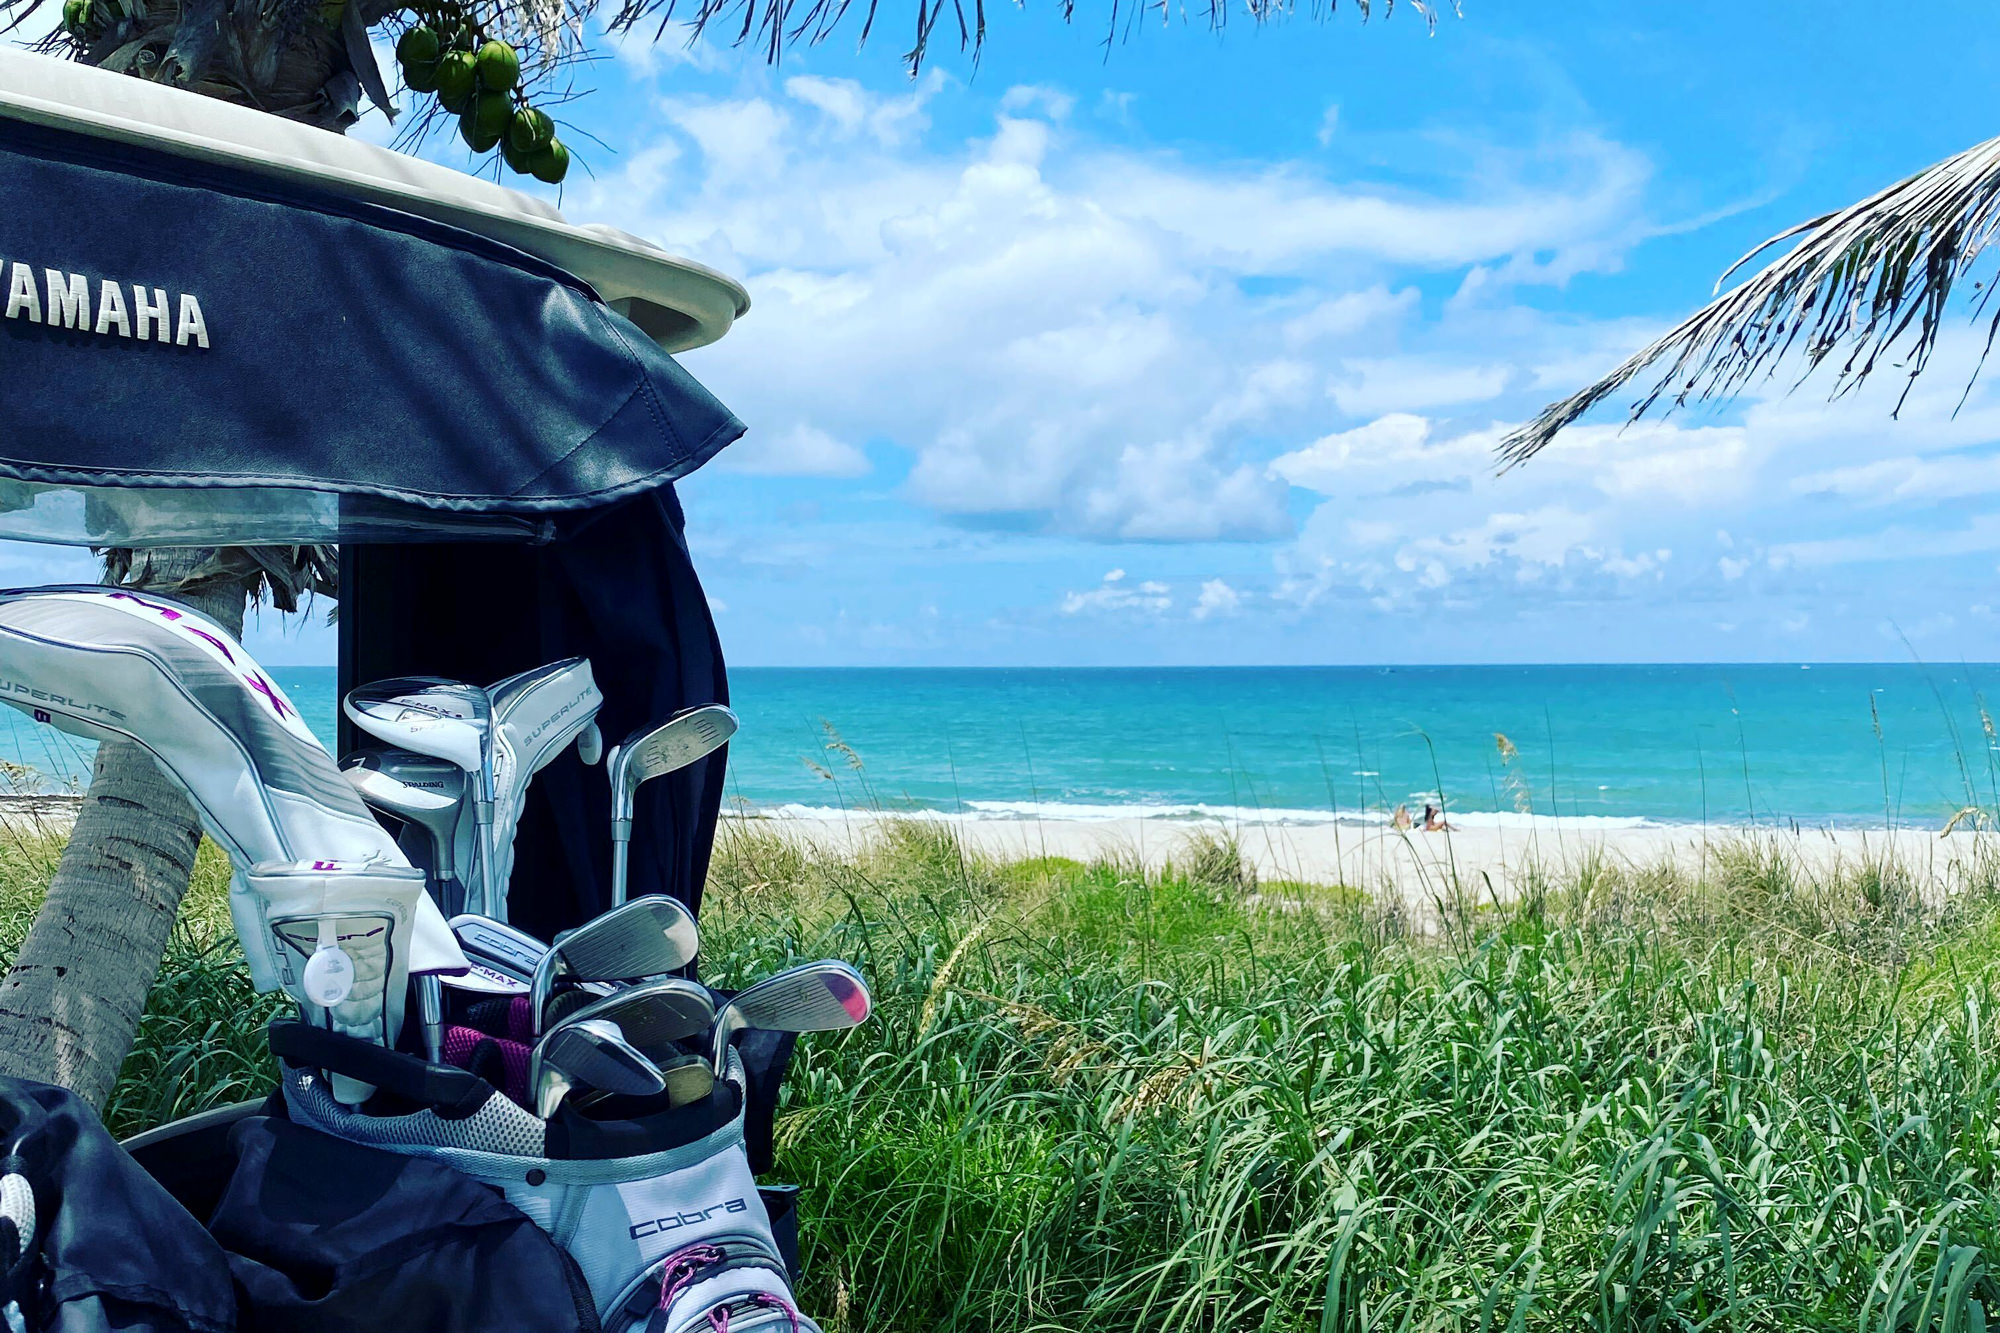 Two of Babs' favorite things in one photo: Golf clubs and a beach view...